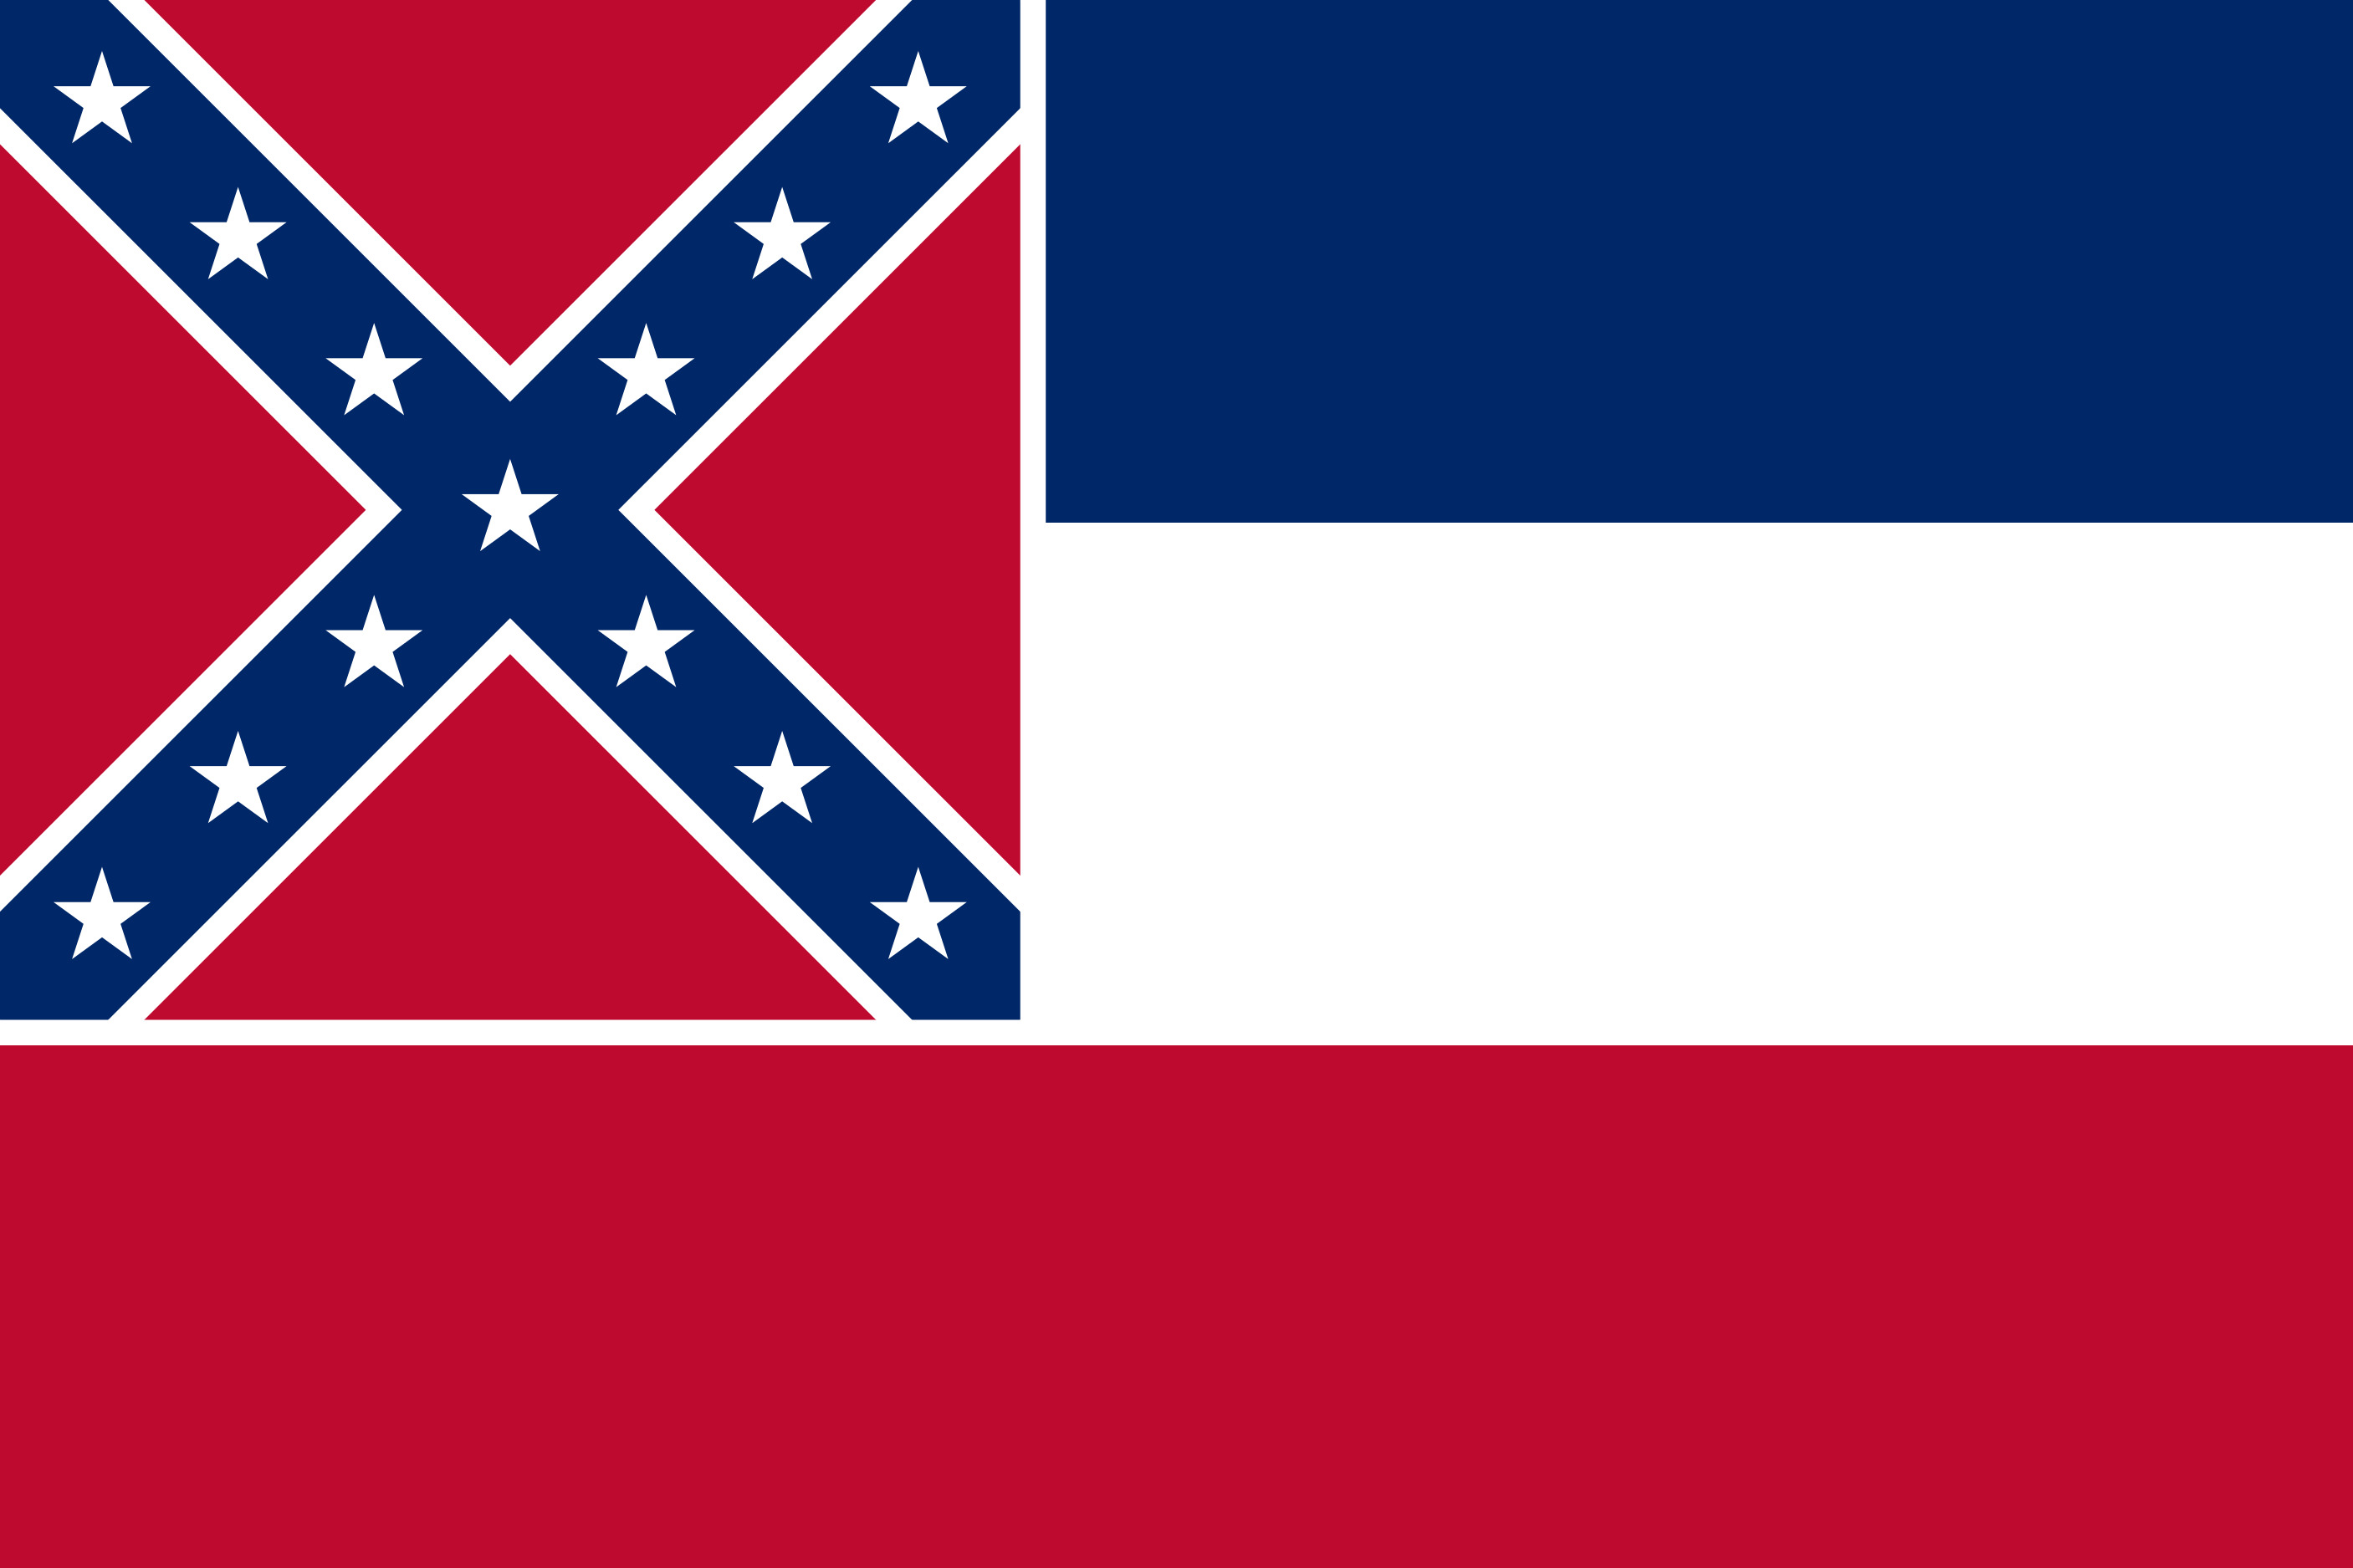 Mississippi State Flag Colors